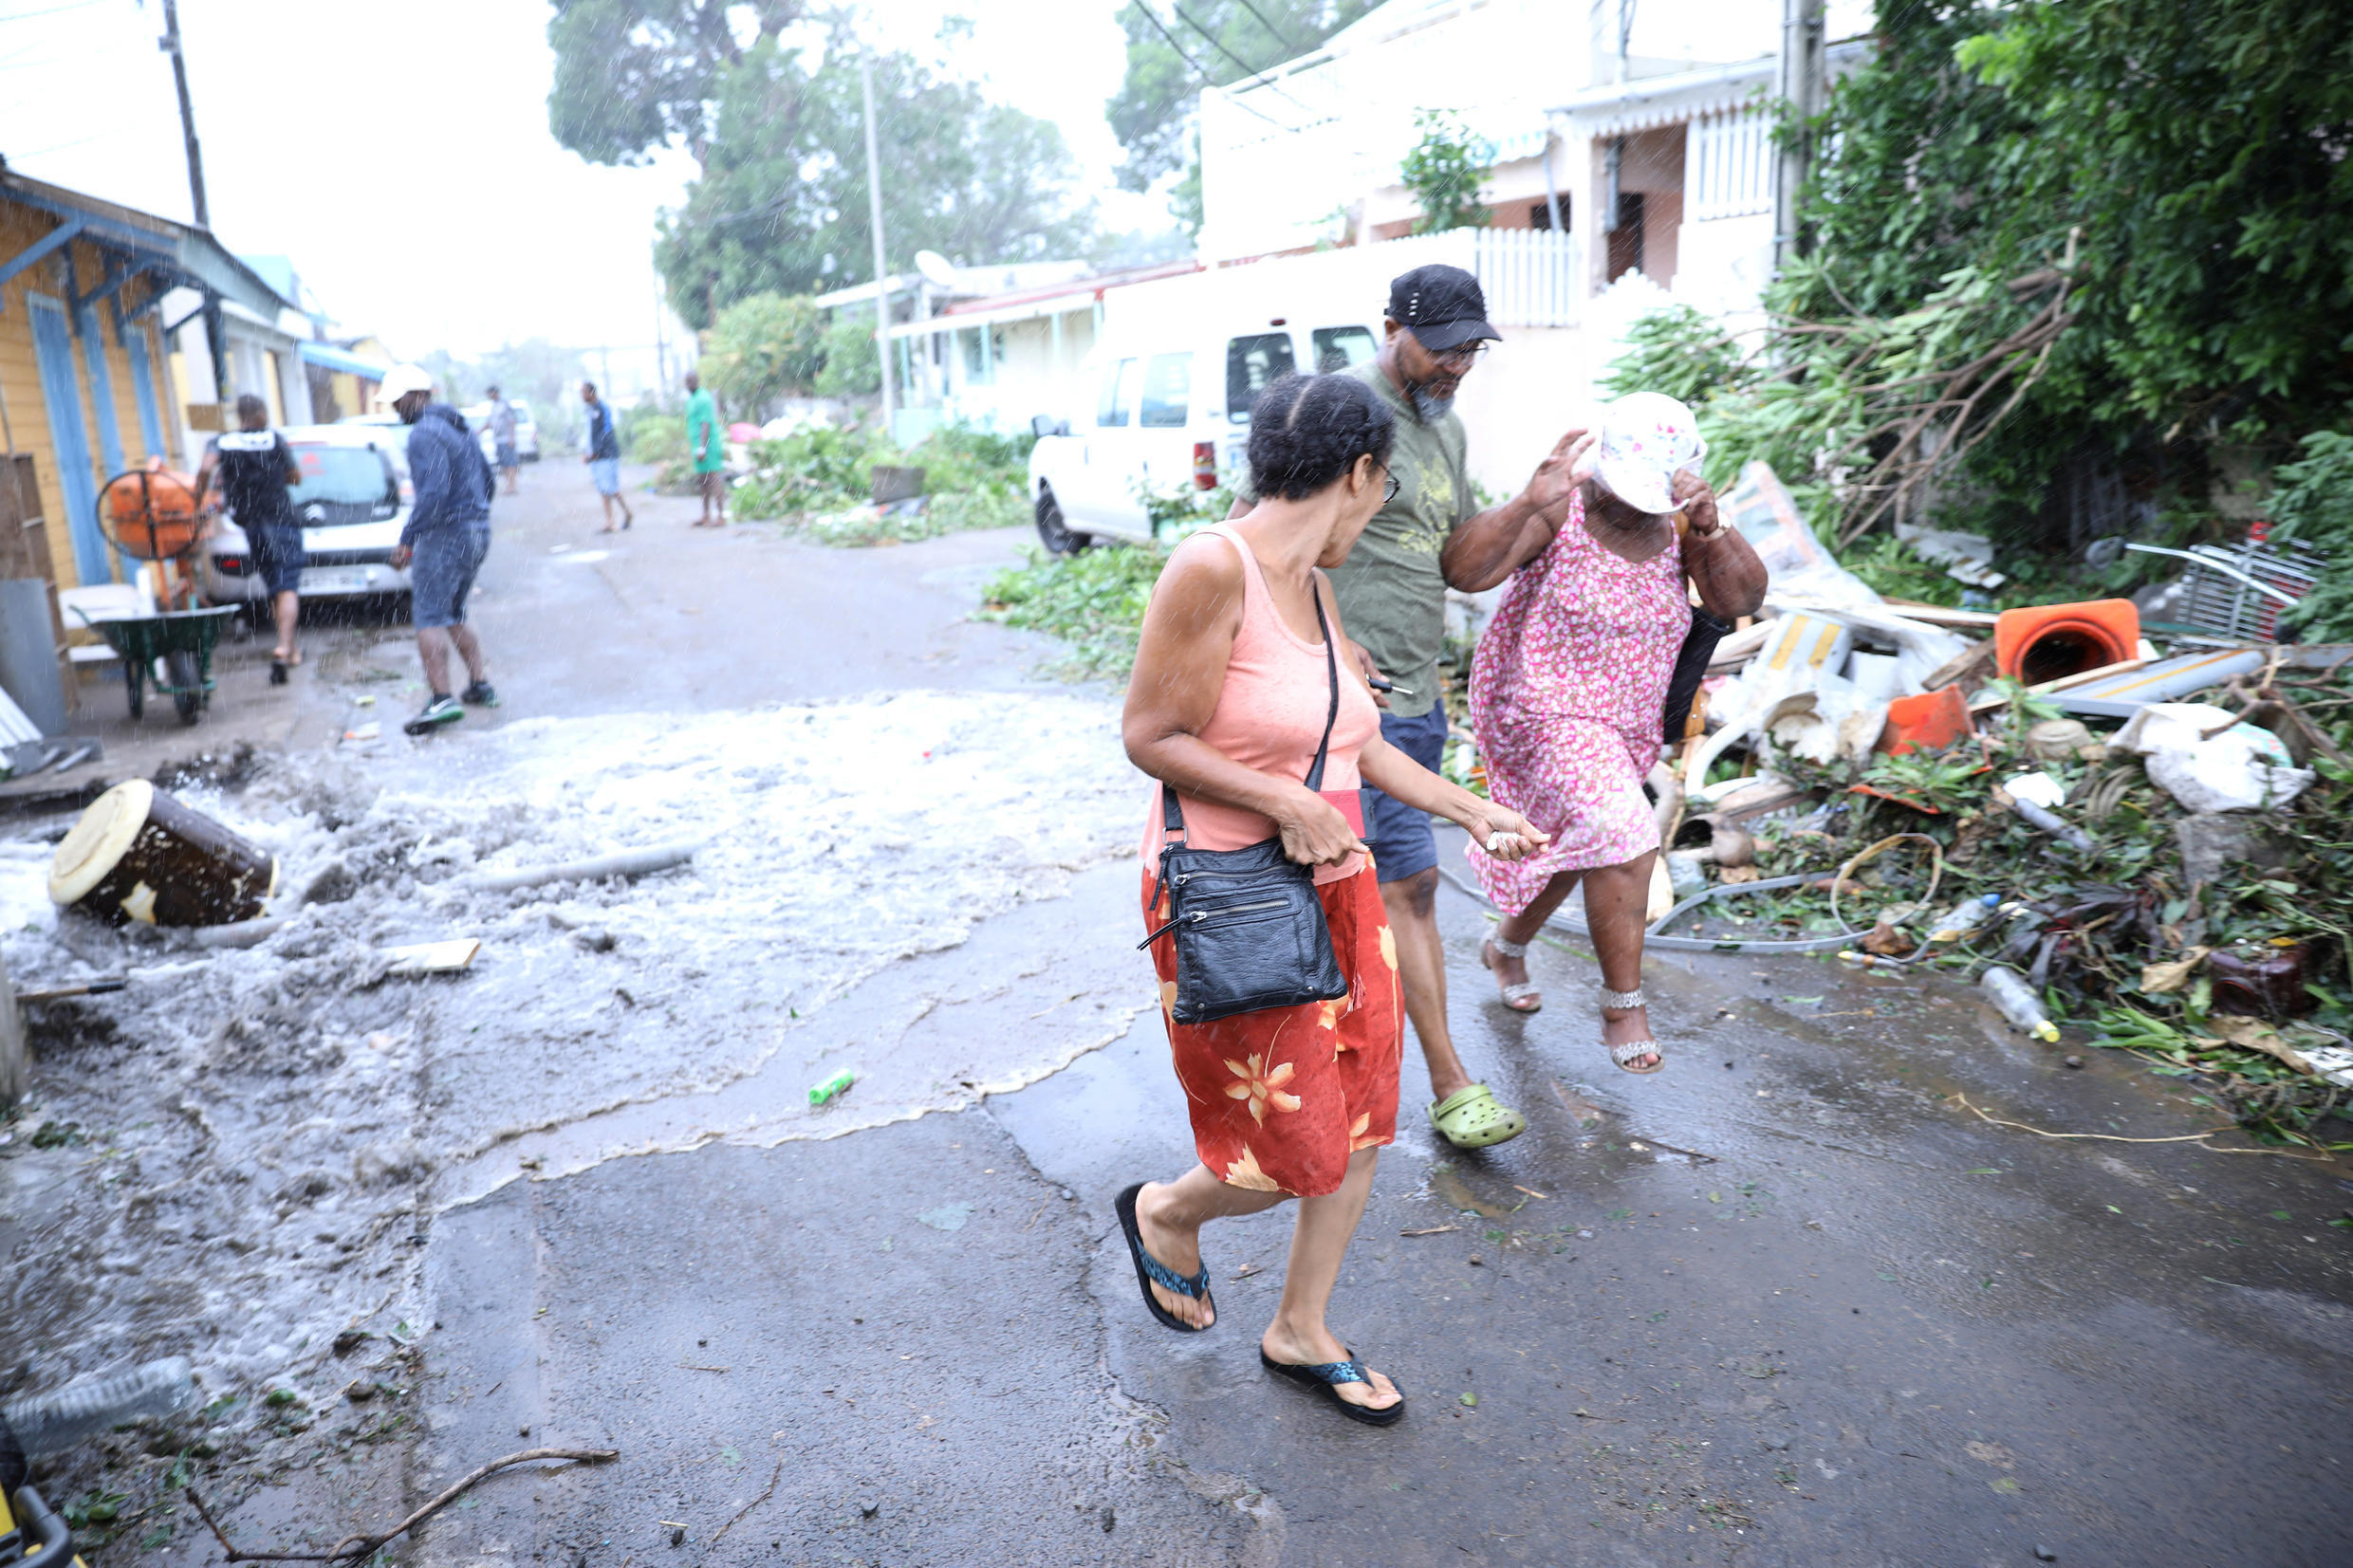 Basse-Terre in Guadeloupe after Hurricane Maria hit the island